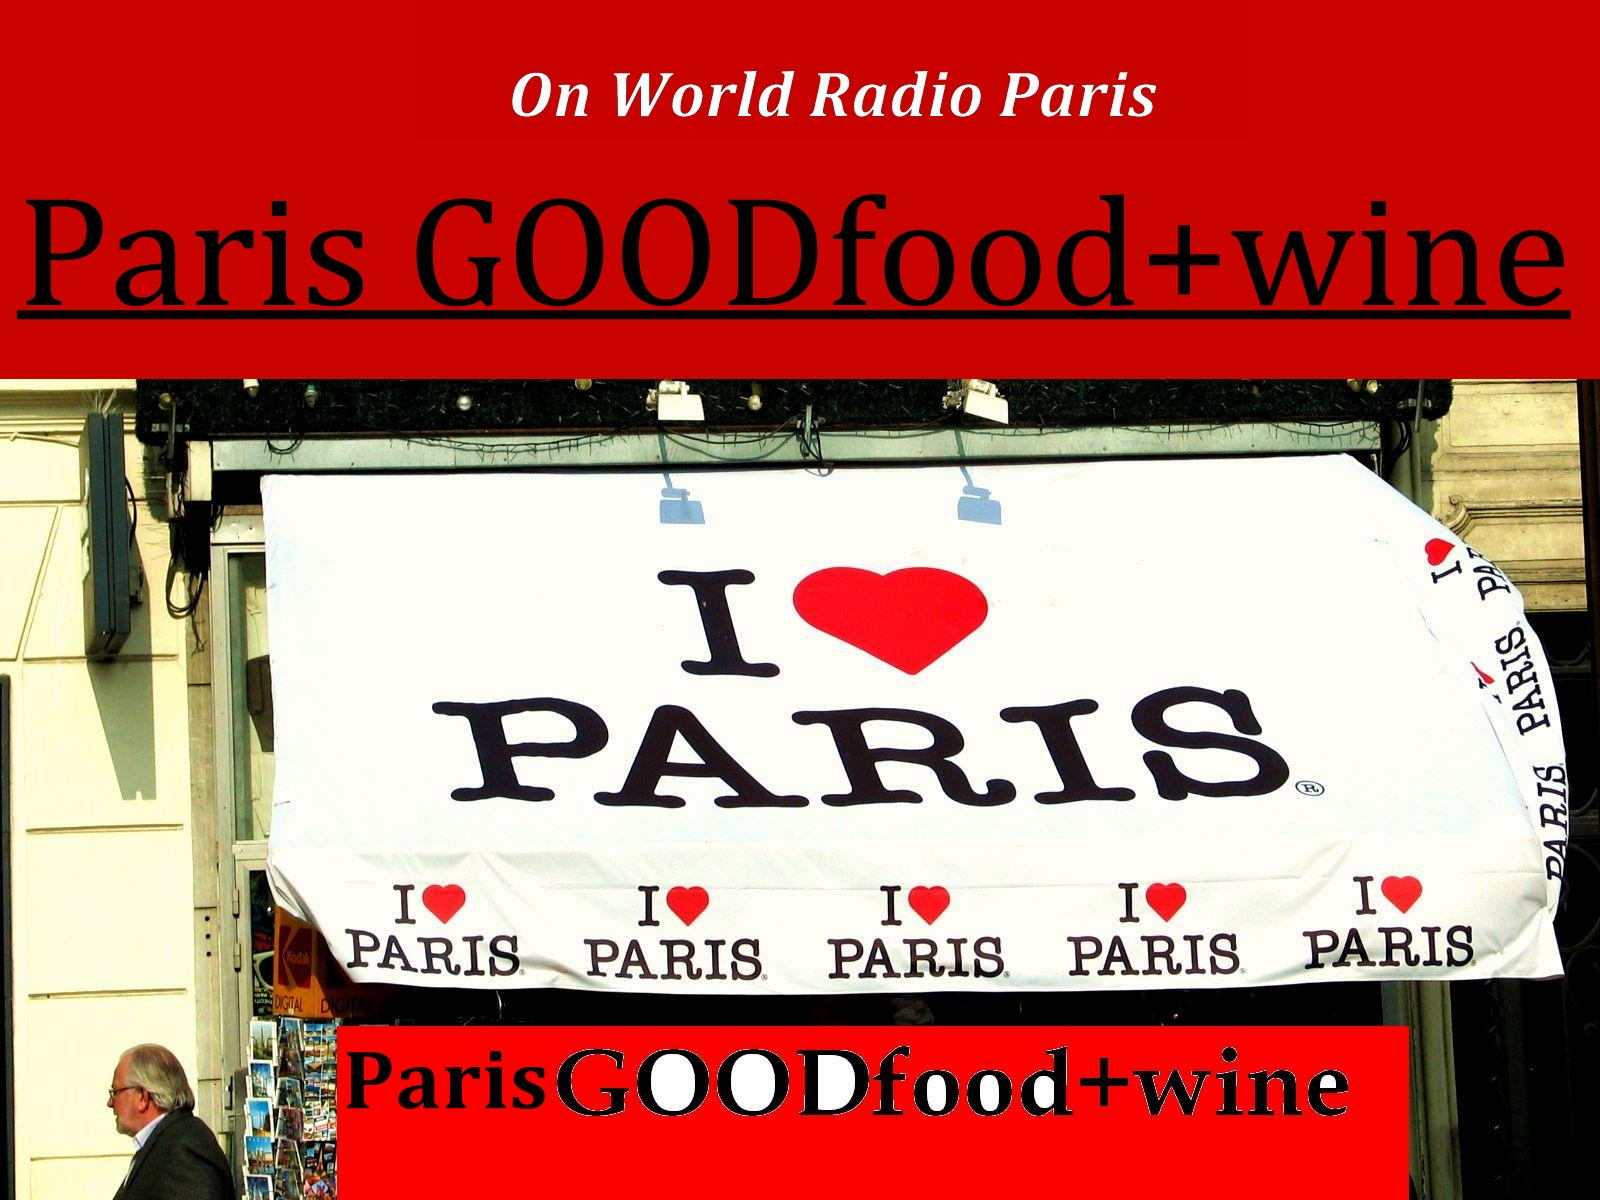 iTunes - Paris GOOD food+wine